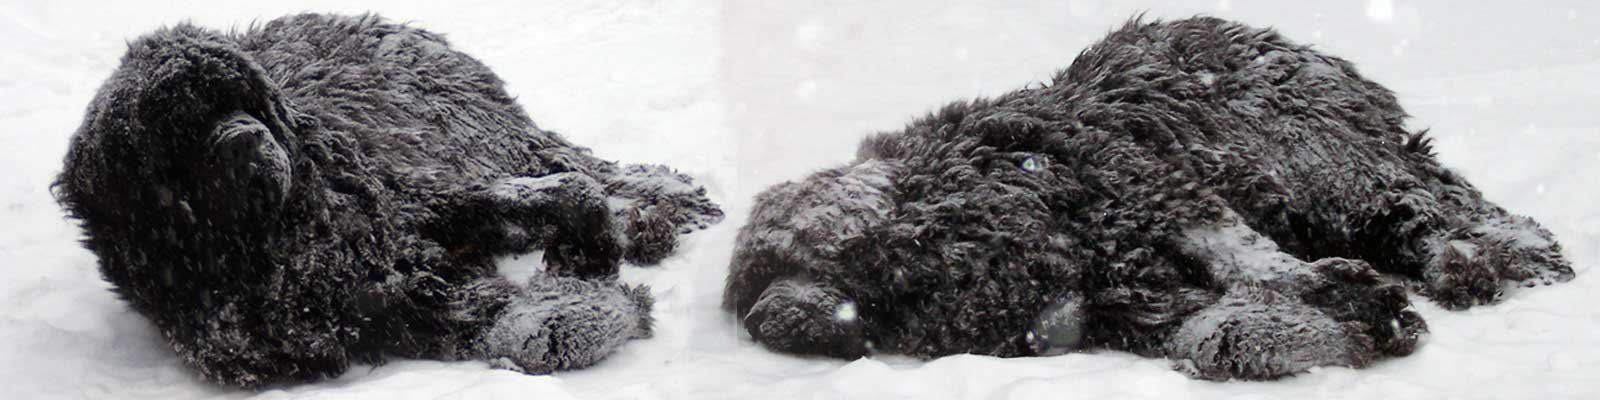 Newfoundland dog in snow